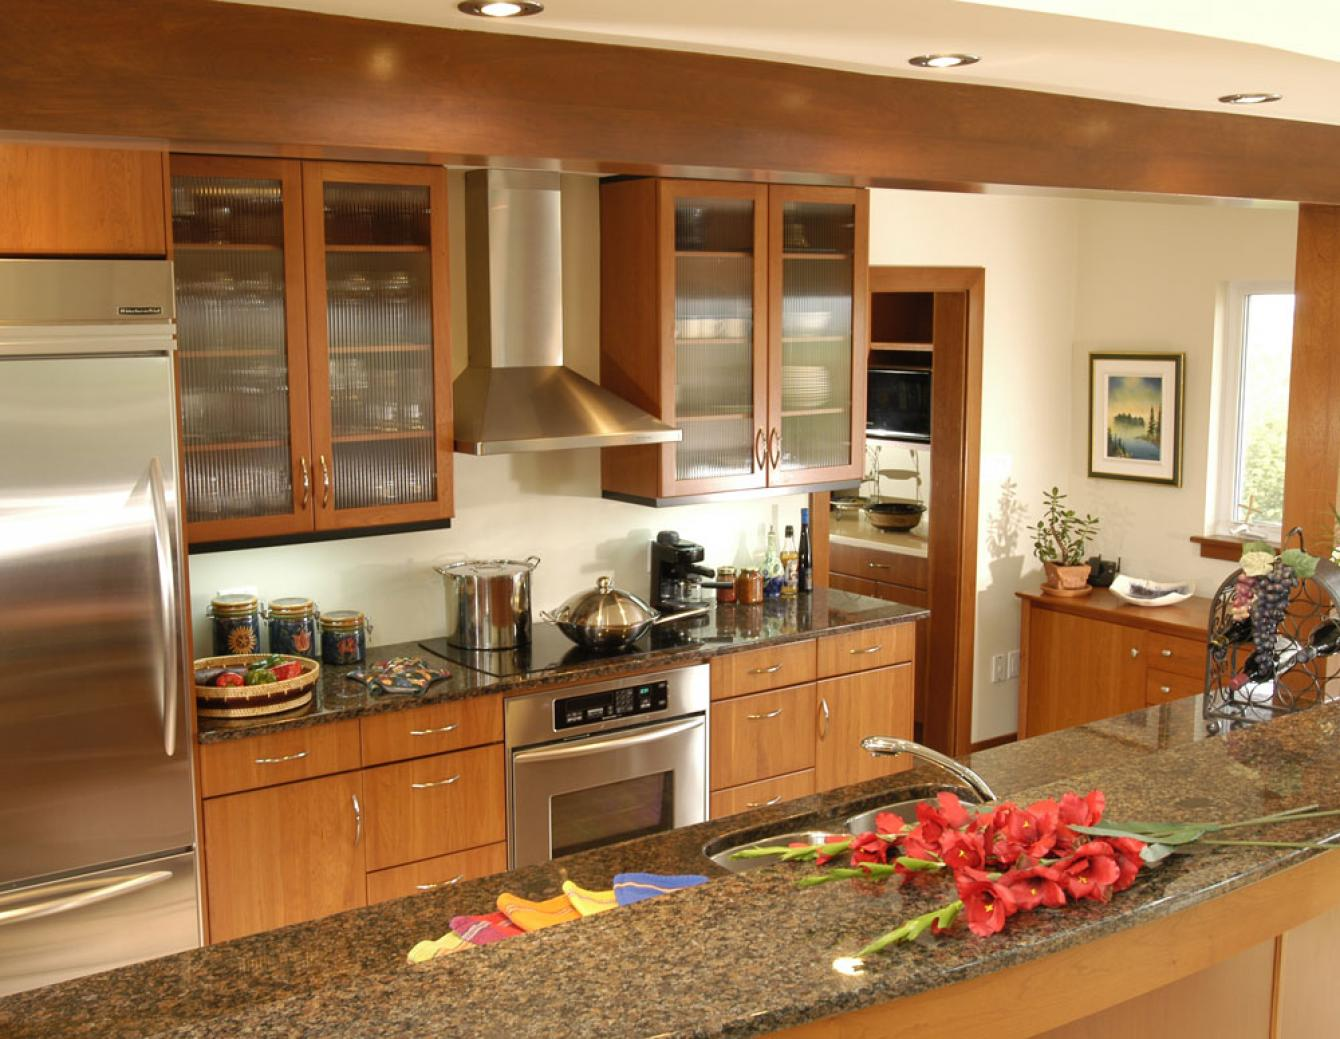 Kitchen design gallery triangle kitchen Kitchen designs pictures free